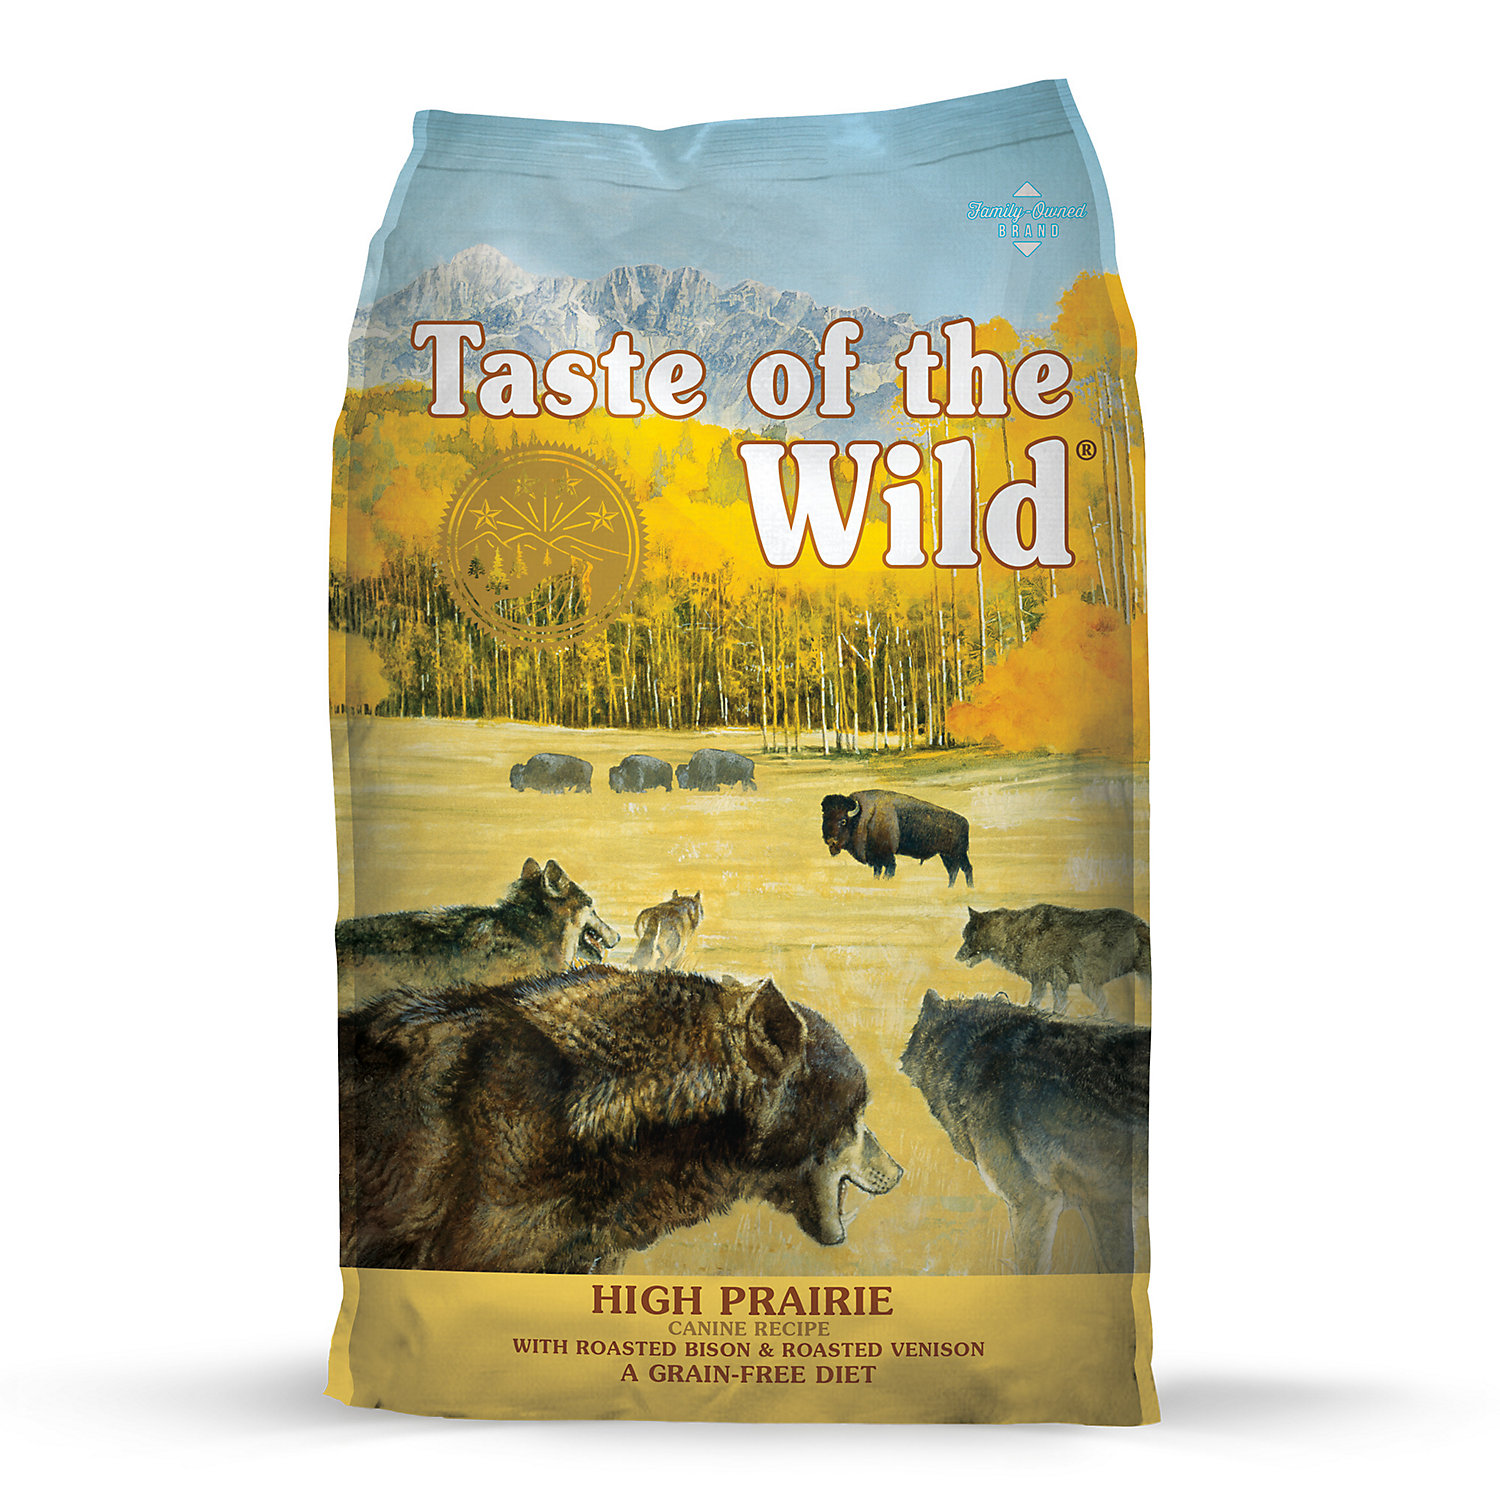 Taste Of The Wild Dog Food Petco